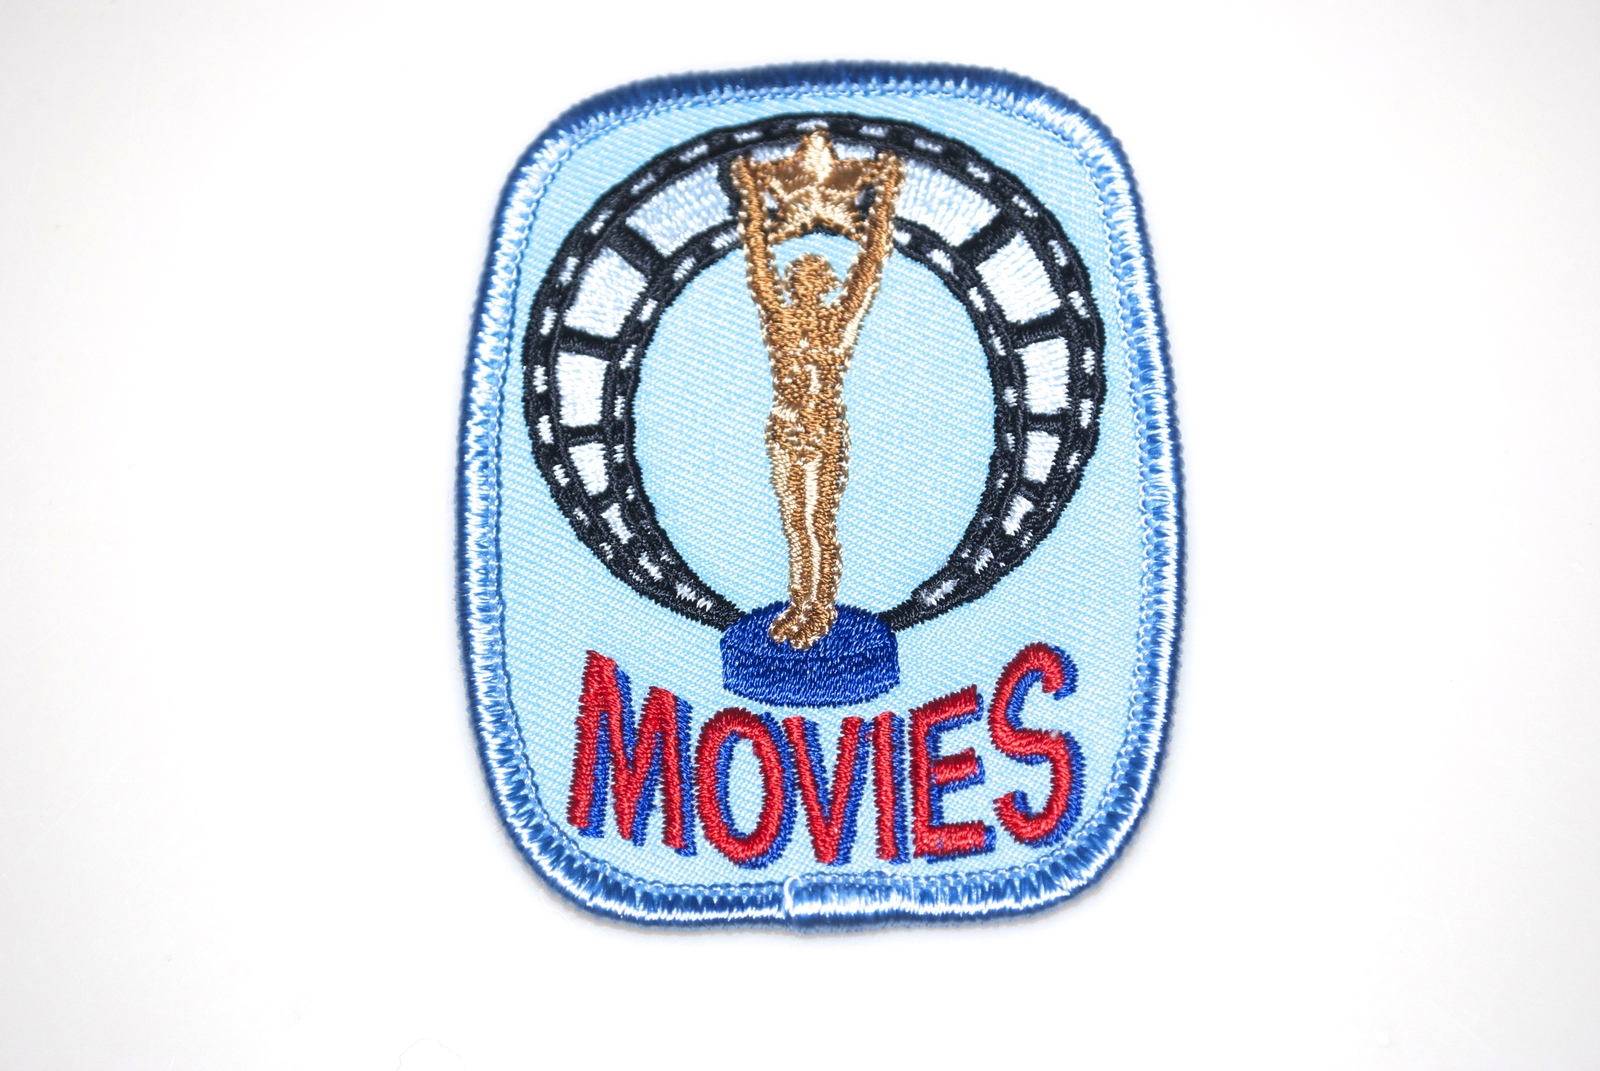 Primary image for Girl Scouts Badge Movies Blue with Oscar Statue and Film Reel